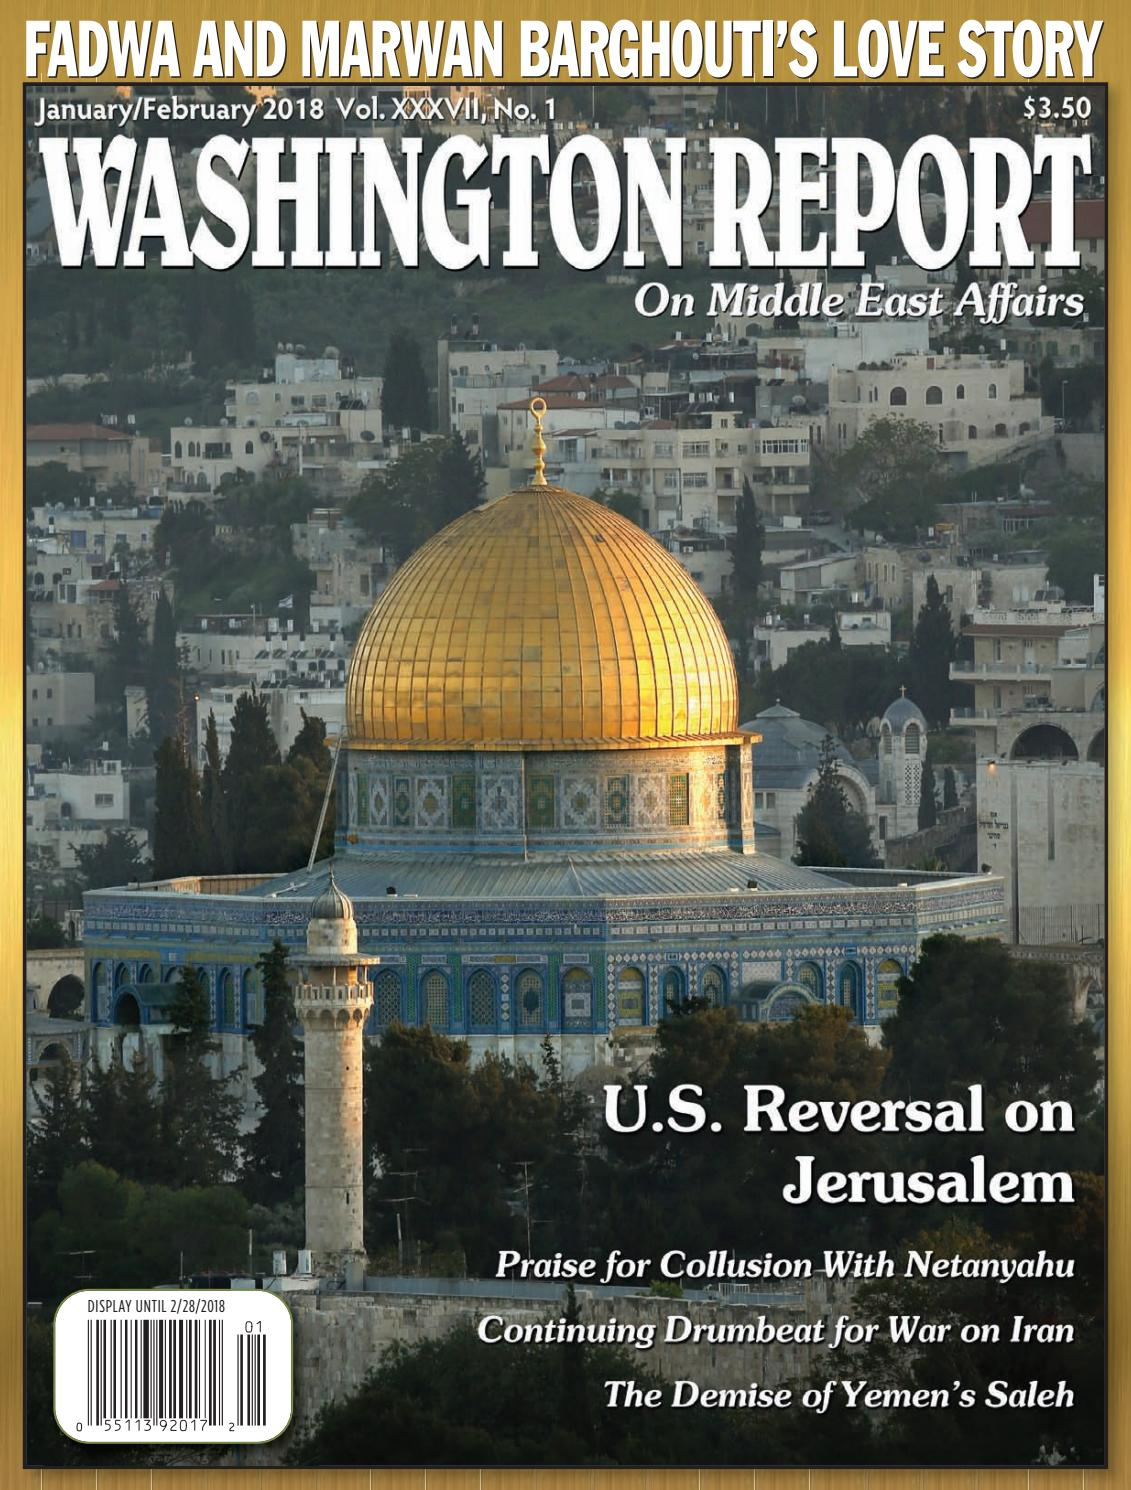 Washington Report JanuaryFebruary 2018 Vol